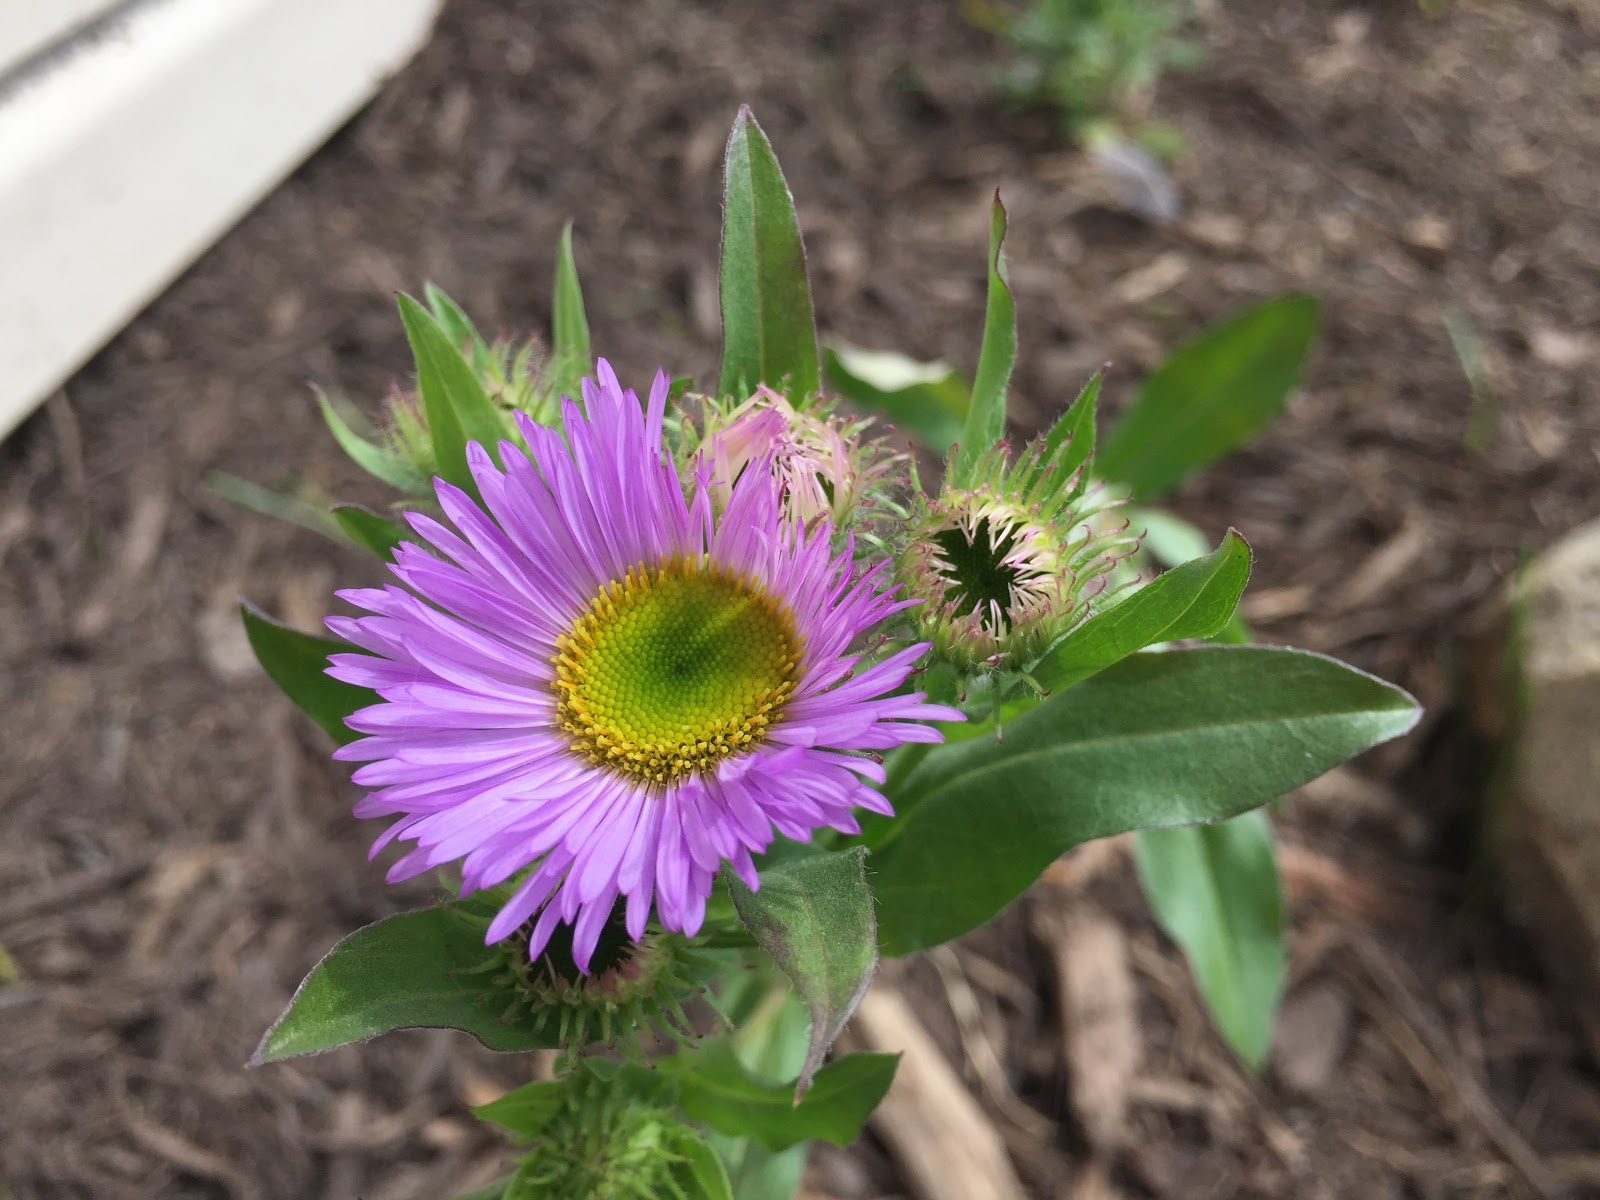 Erigeron speciosus 'Darkest of All' blooming